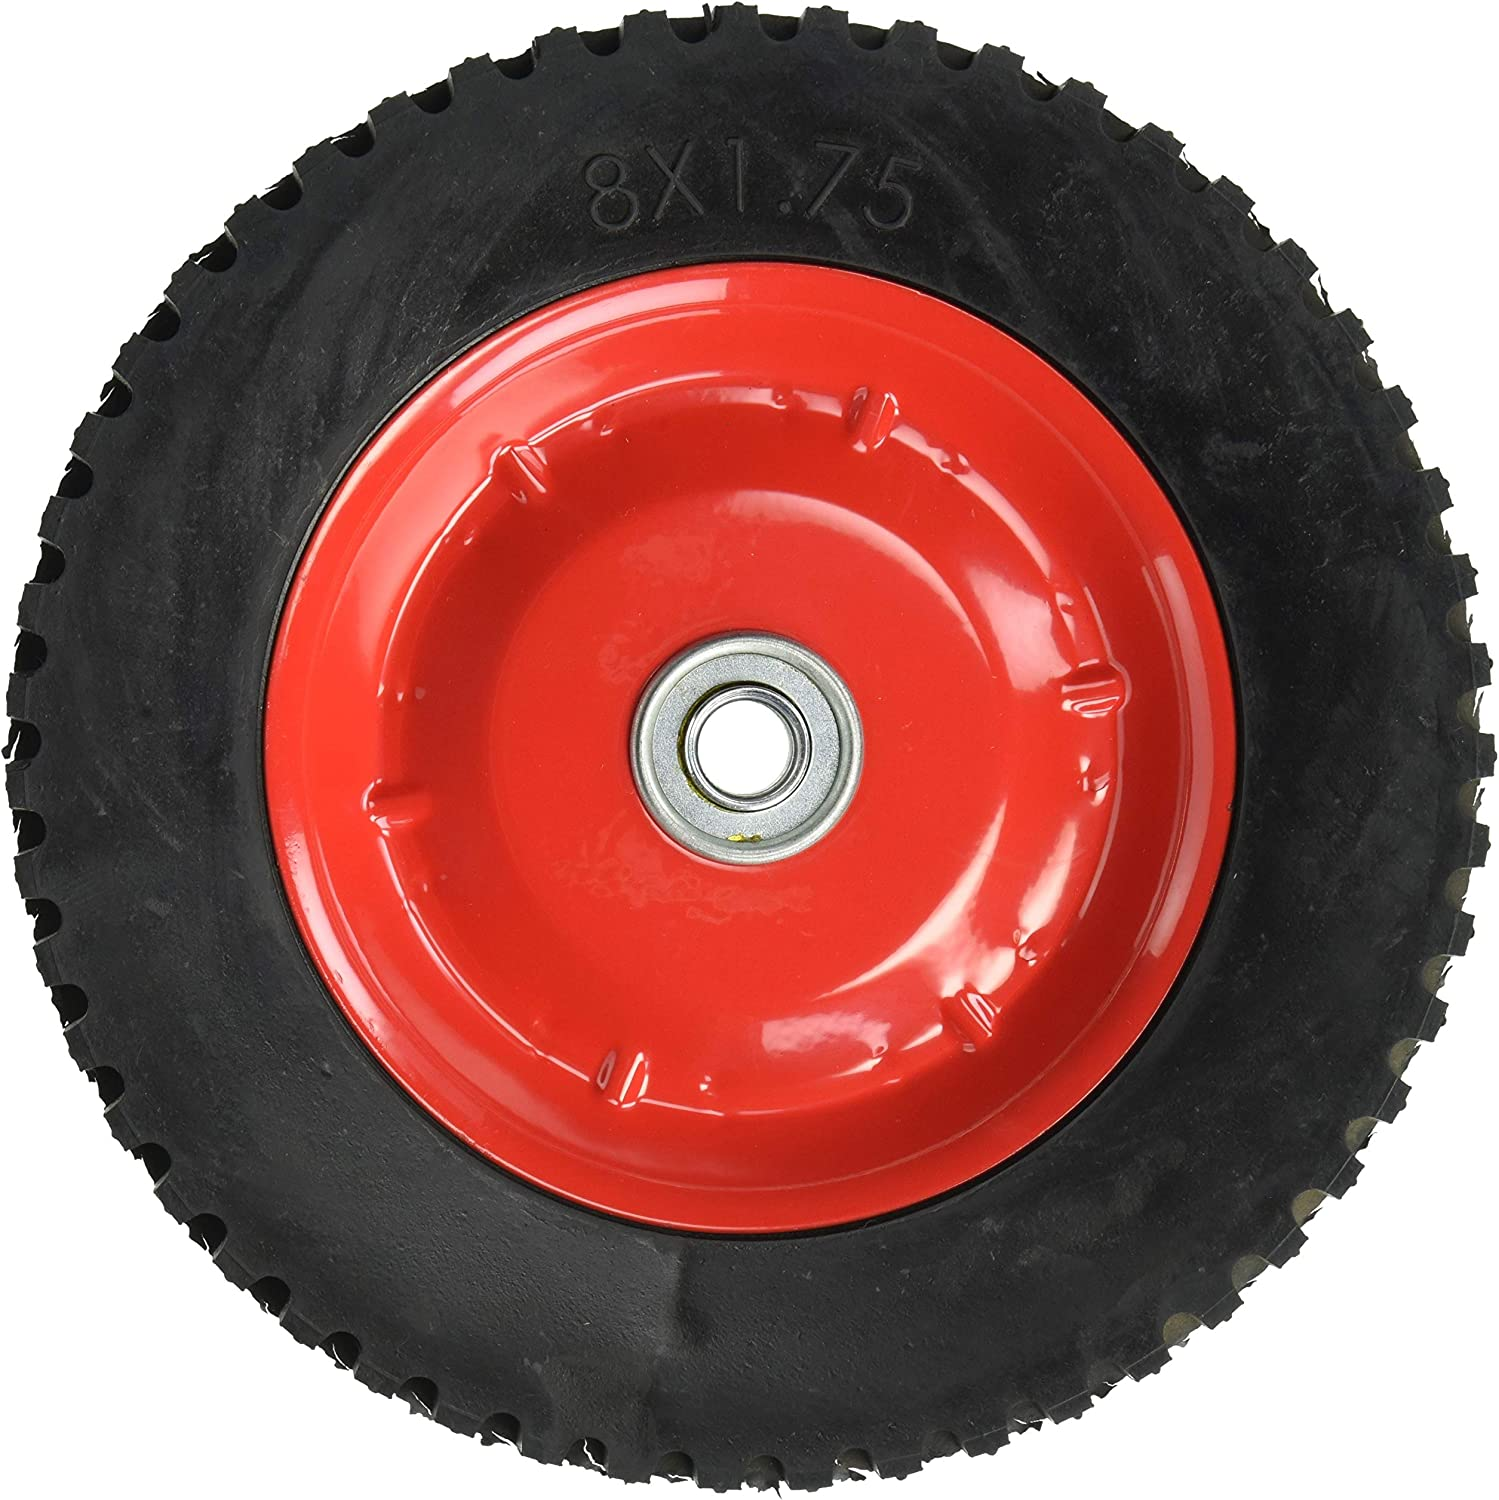 Shepherd Hardware 9636 8-Inch Semi-Pneumatic Rubber Tire Steel Hub with Ball Bearings 1//2-Inch Bore Centered Axle Ribbed Tread